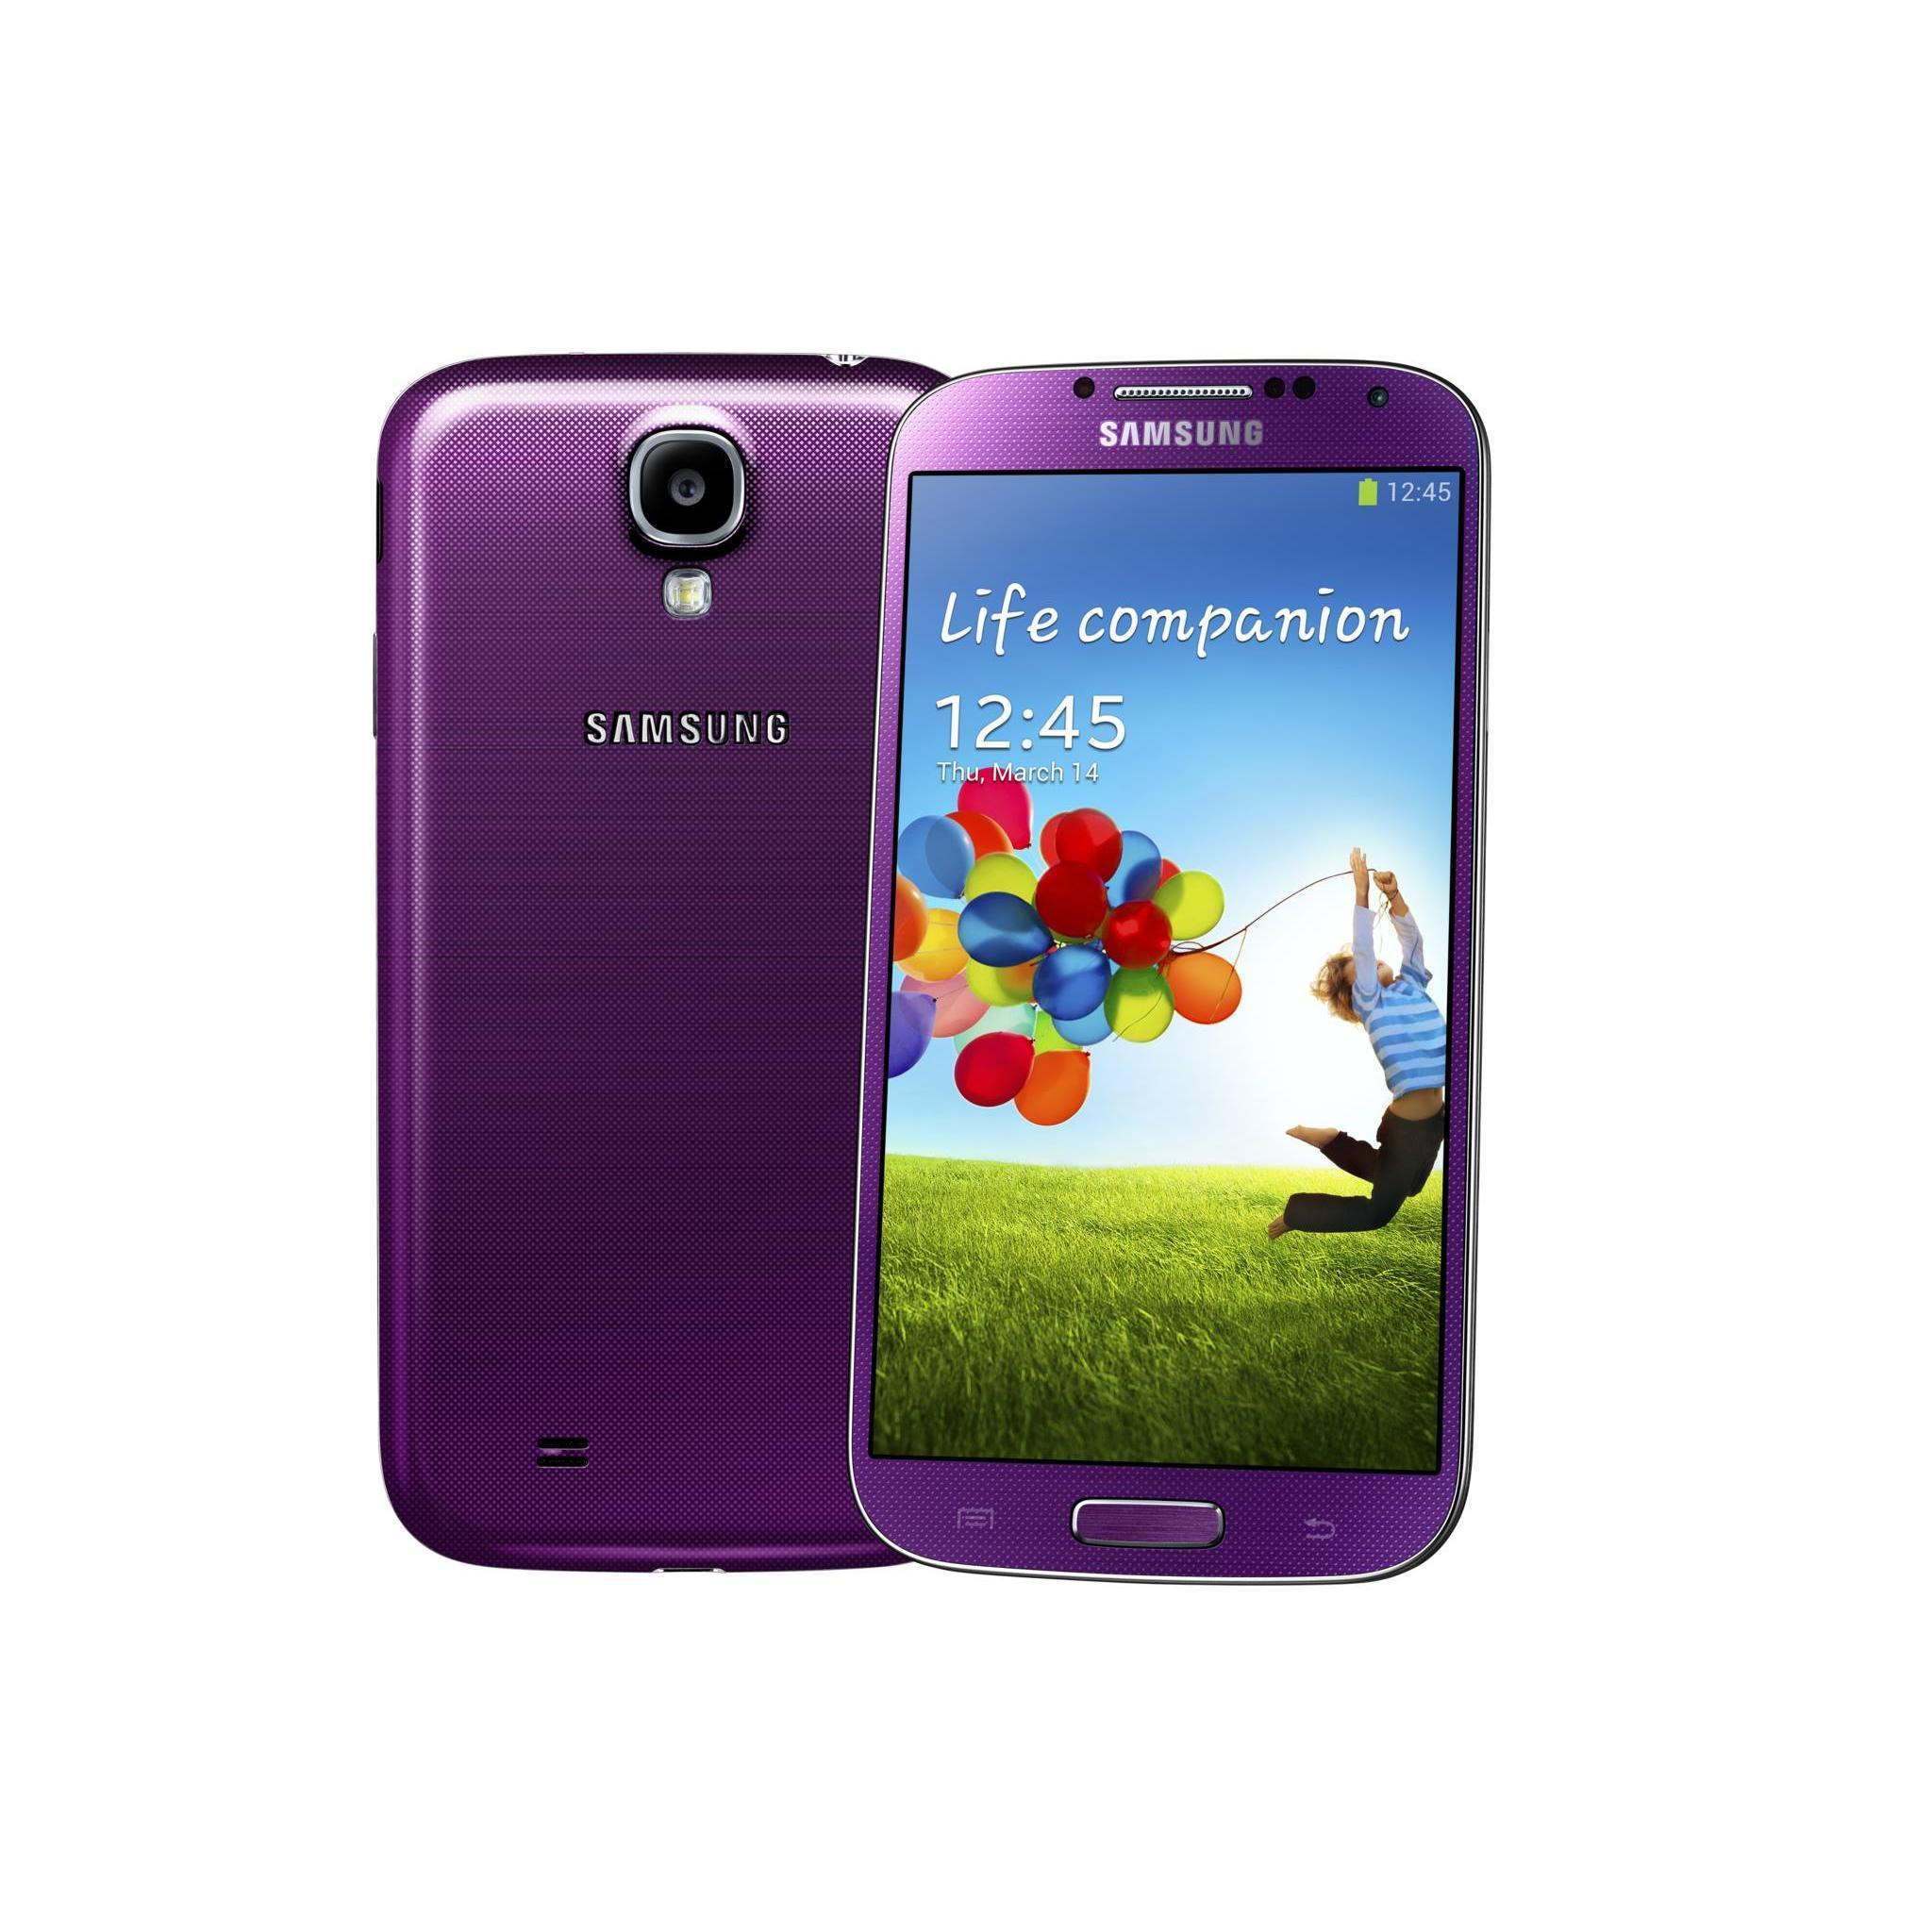 Samsung Galaxy S4 16 Go - Violet - Orange